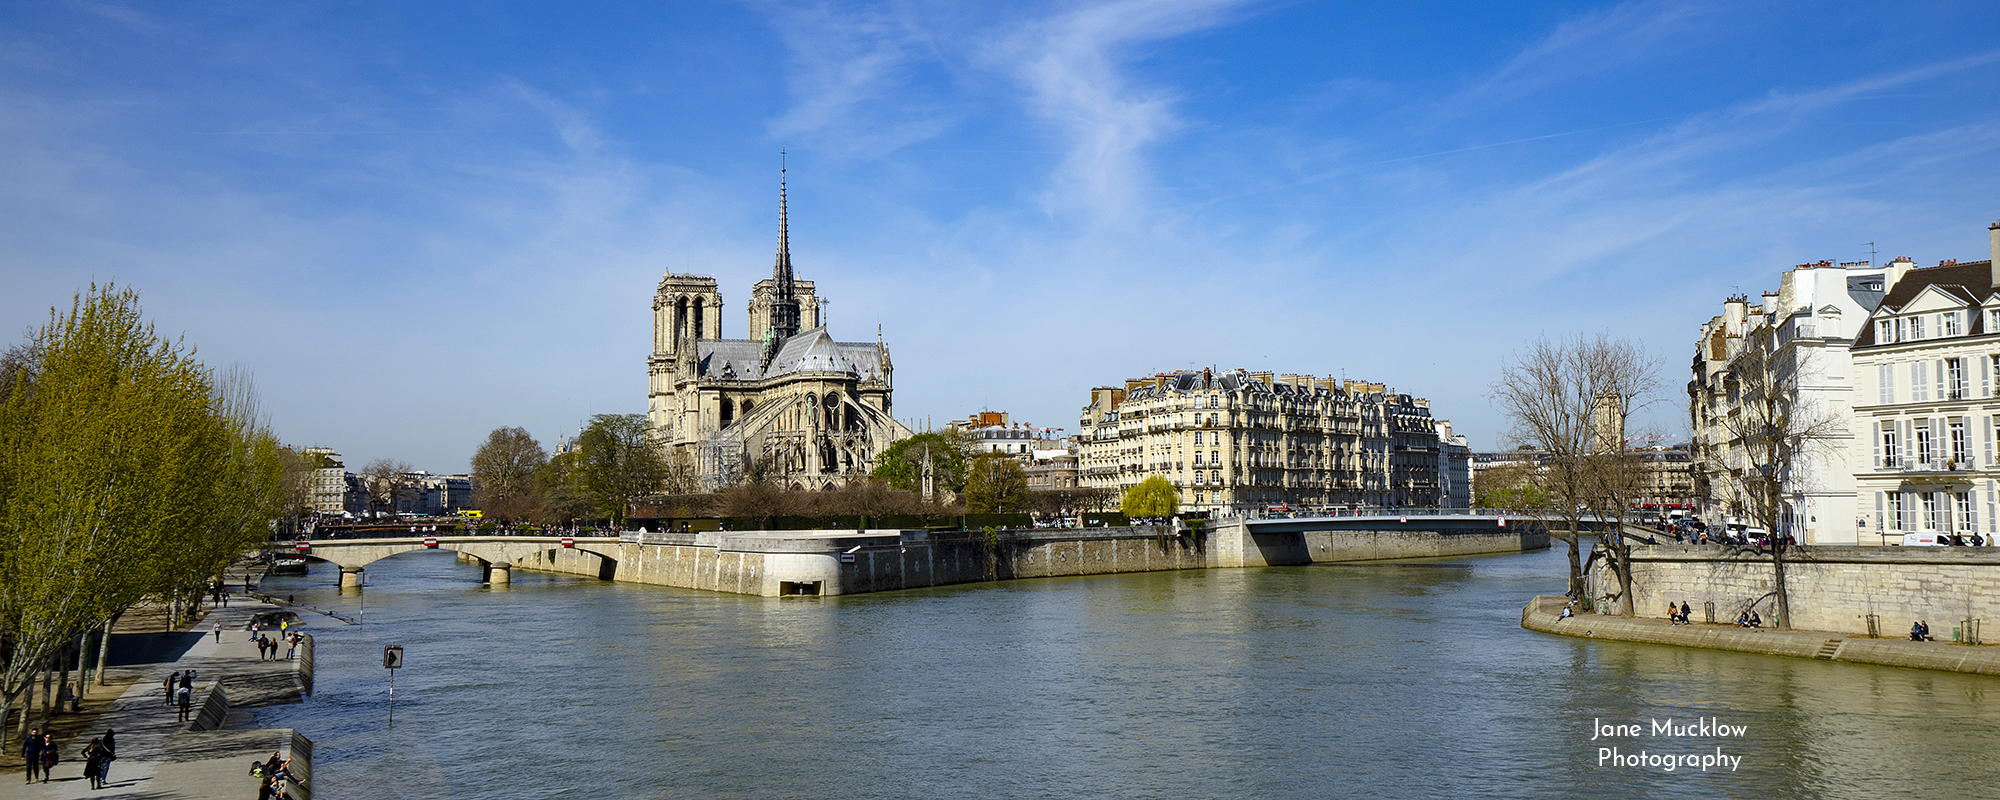 Photo by Jane Mucklow of the River Seine in Paris, with a view of Notre Dame, available as a canvas for your wall.